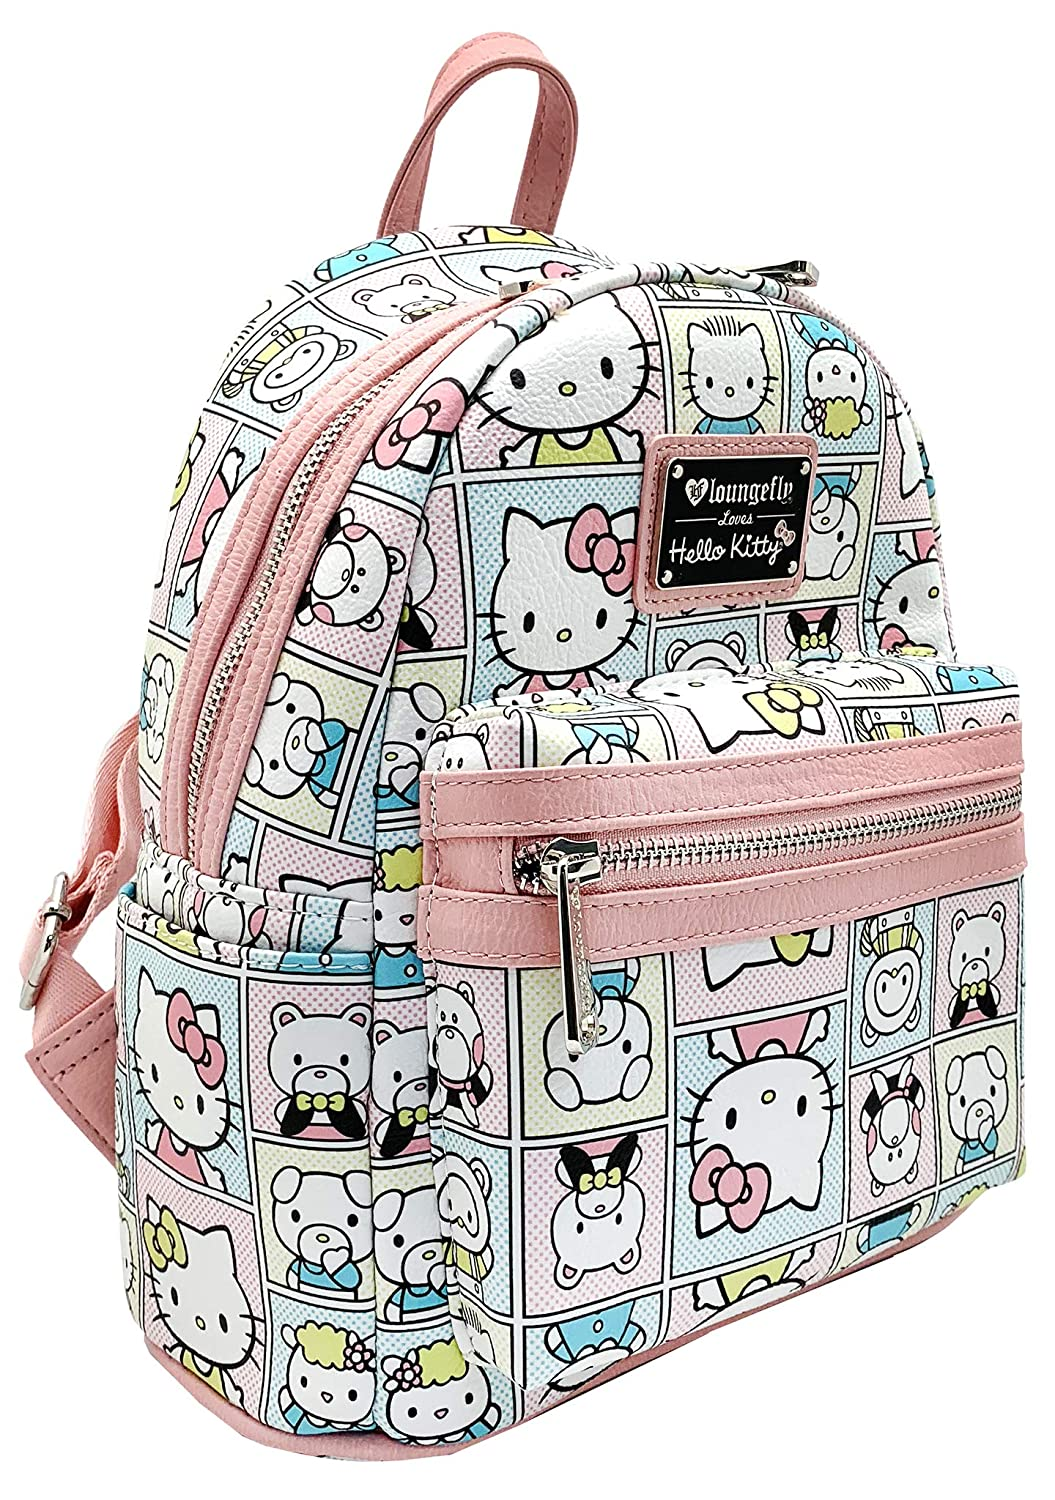 Loungefly x Sanrio Hello Kitty Friends Allover-Print Mini Backpack